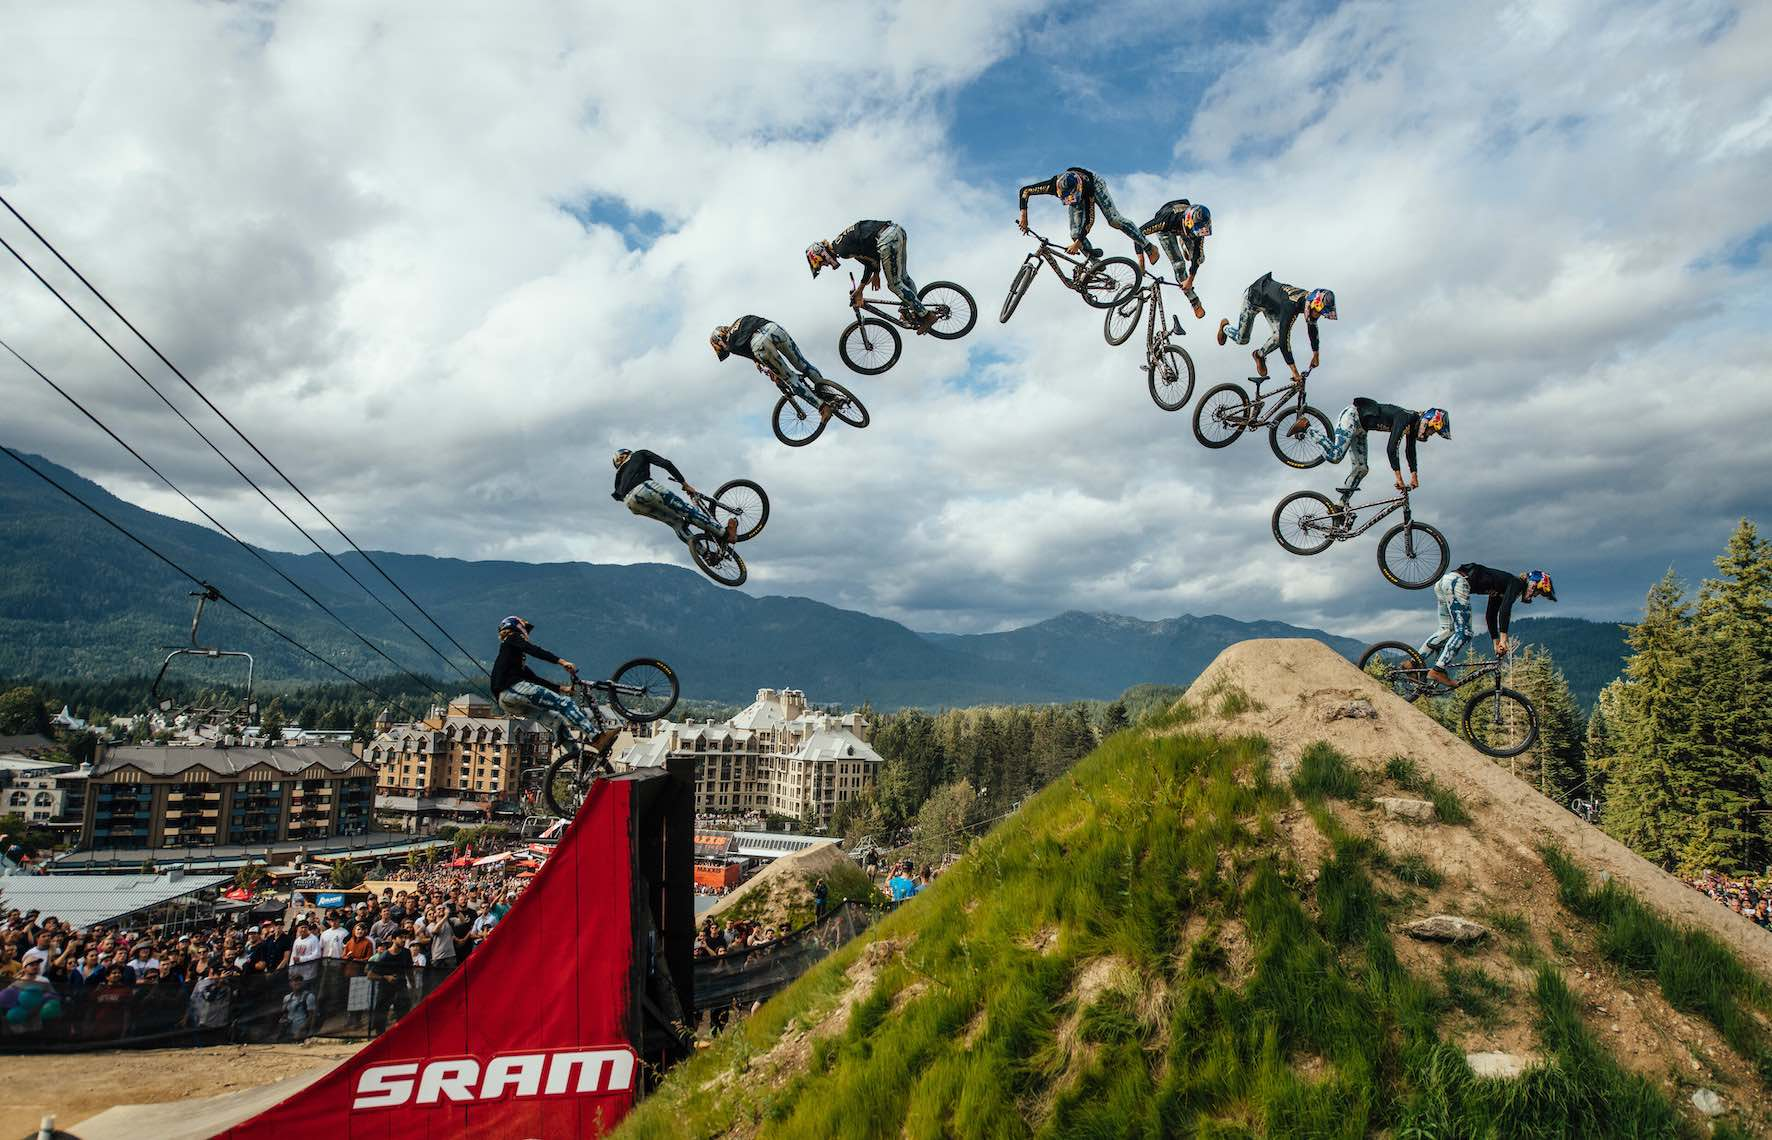 Emil Johansson competing in the 2019 Crankworx Whistler Slopestyle MTB event